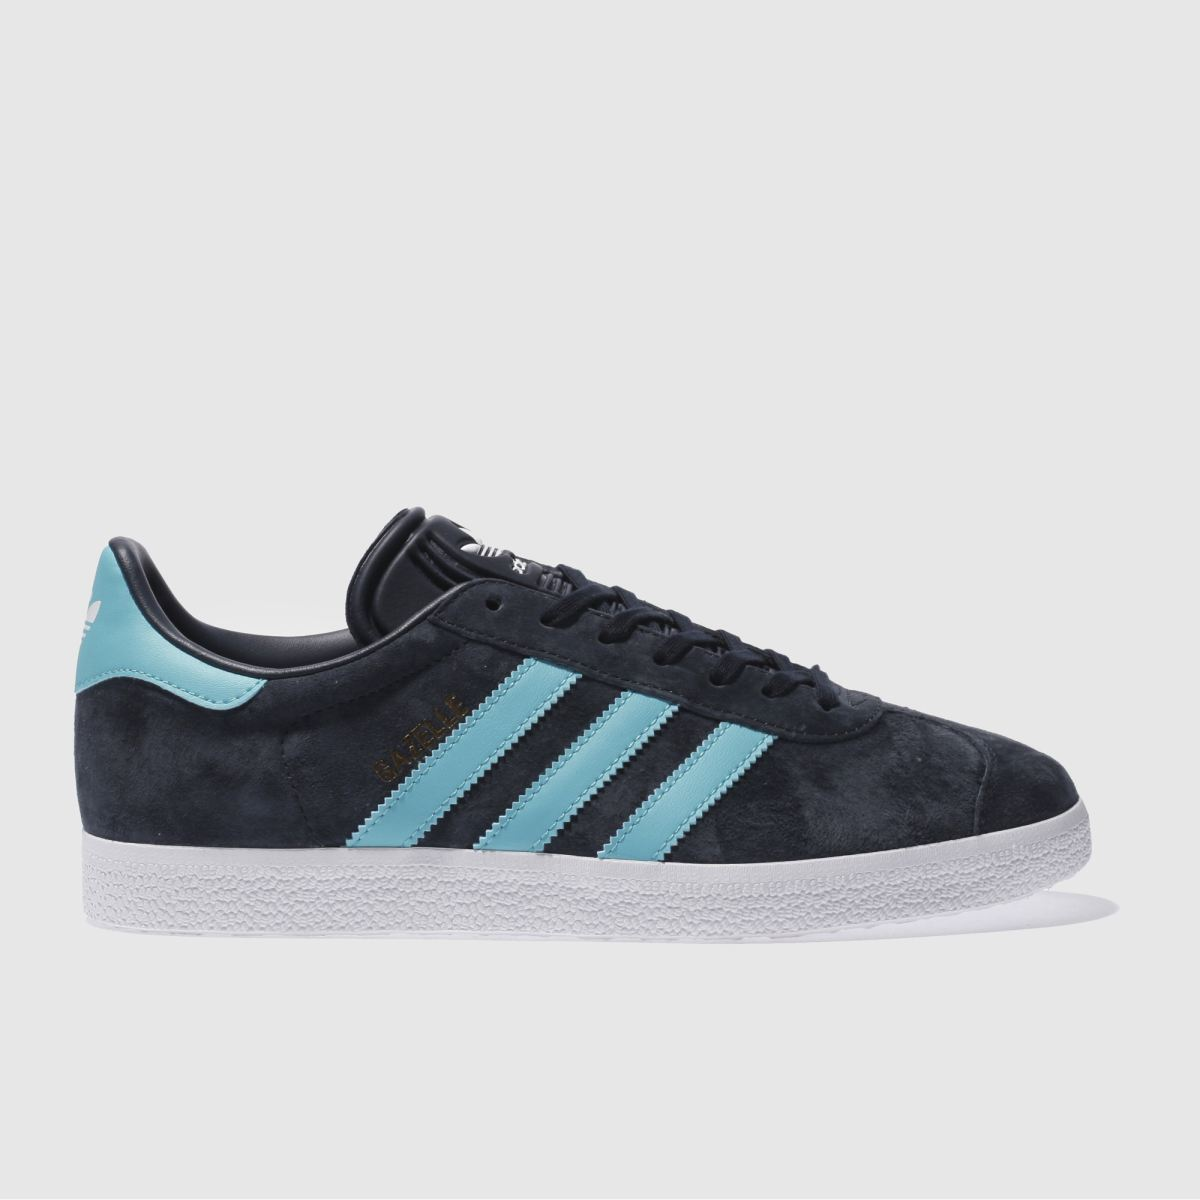 Adidas Navy & Turquoise Gazelle Trainers